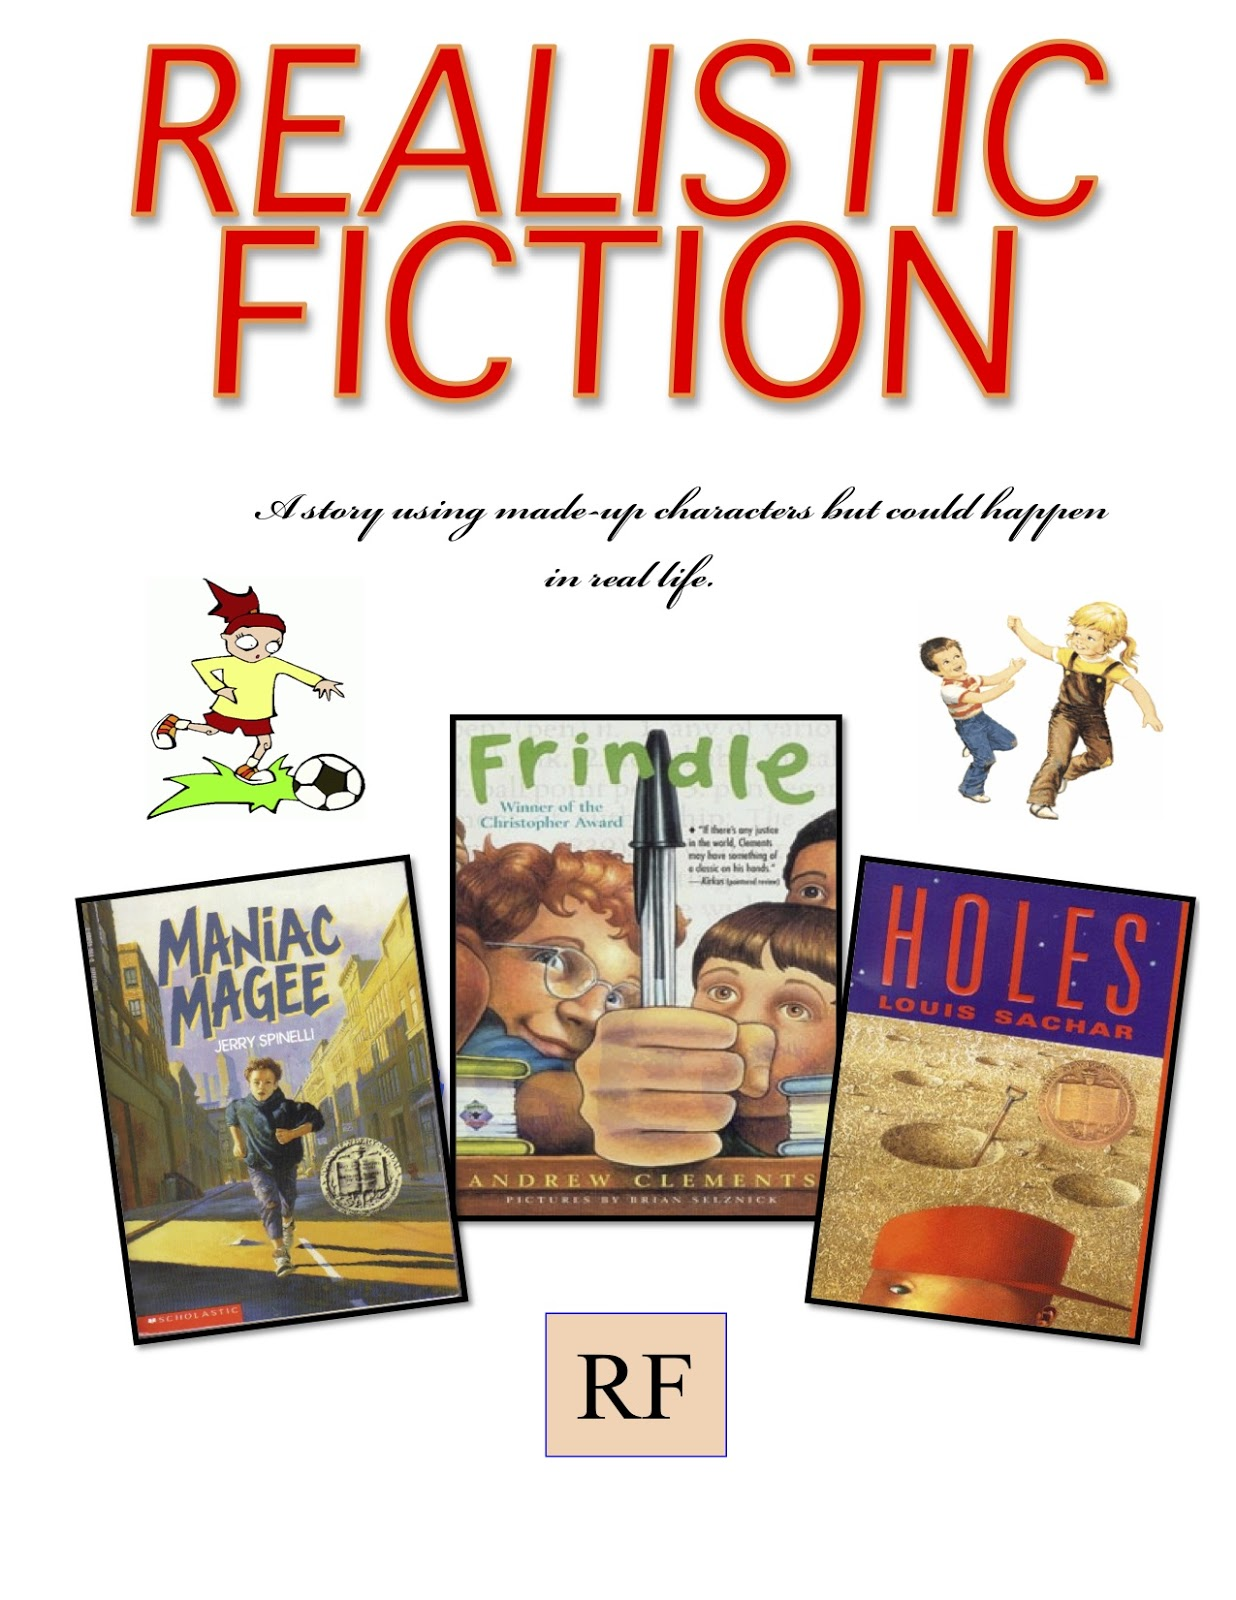 Mr. Goff's Class Blog: Genre series: Realistic Fiction